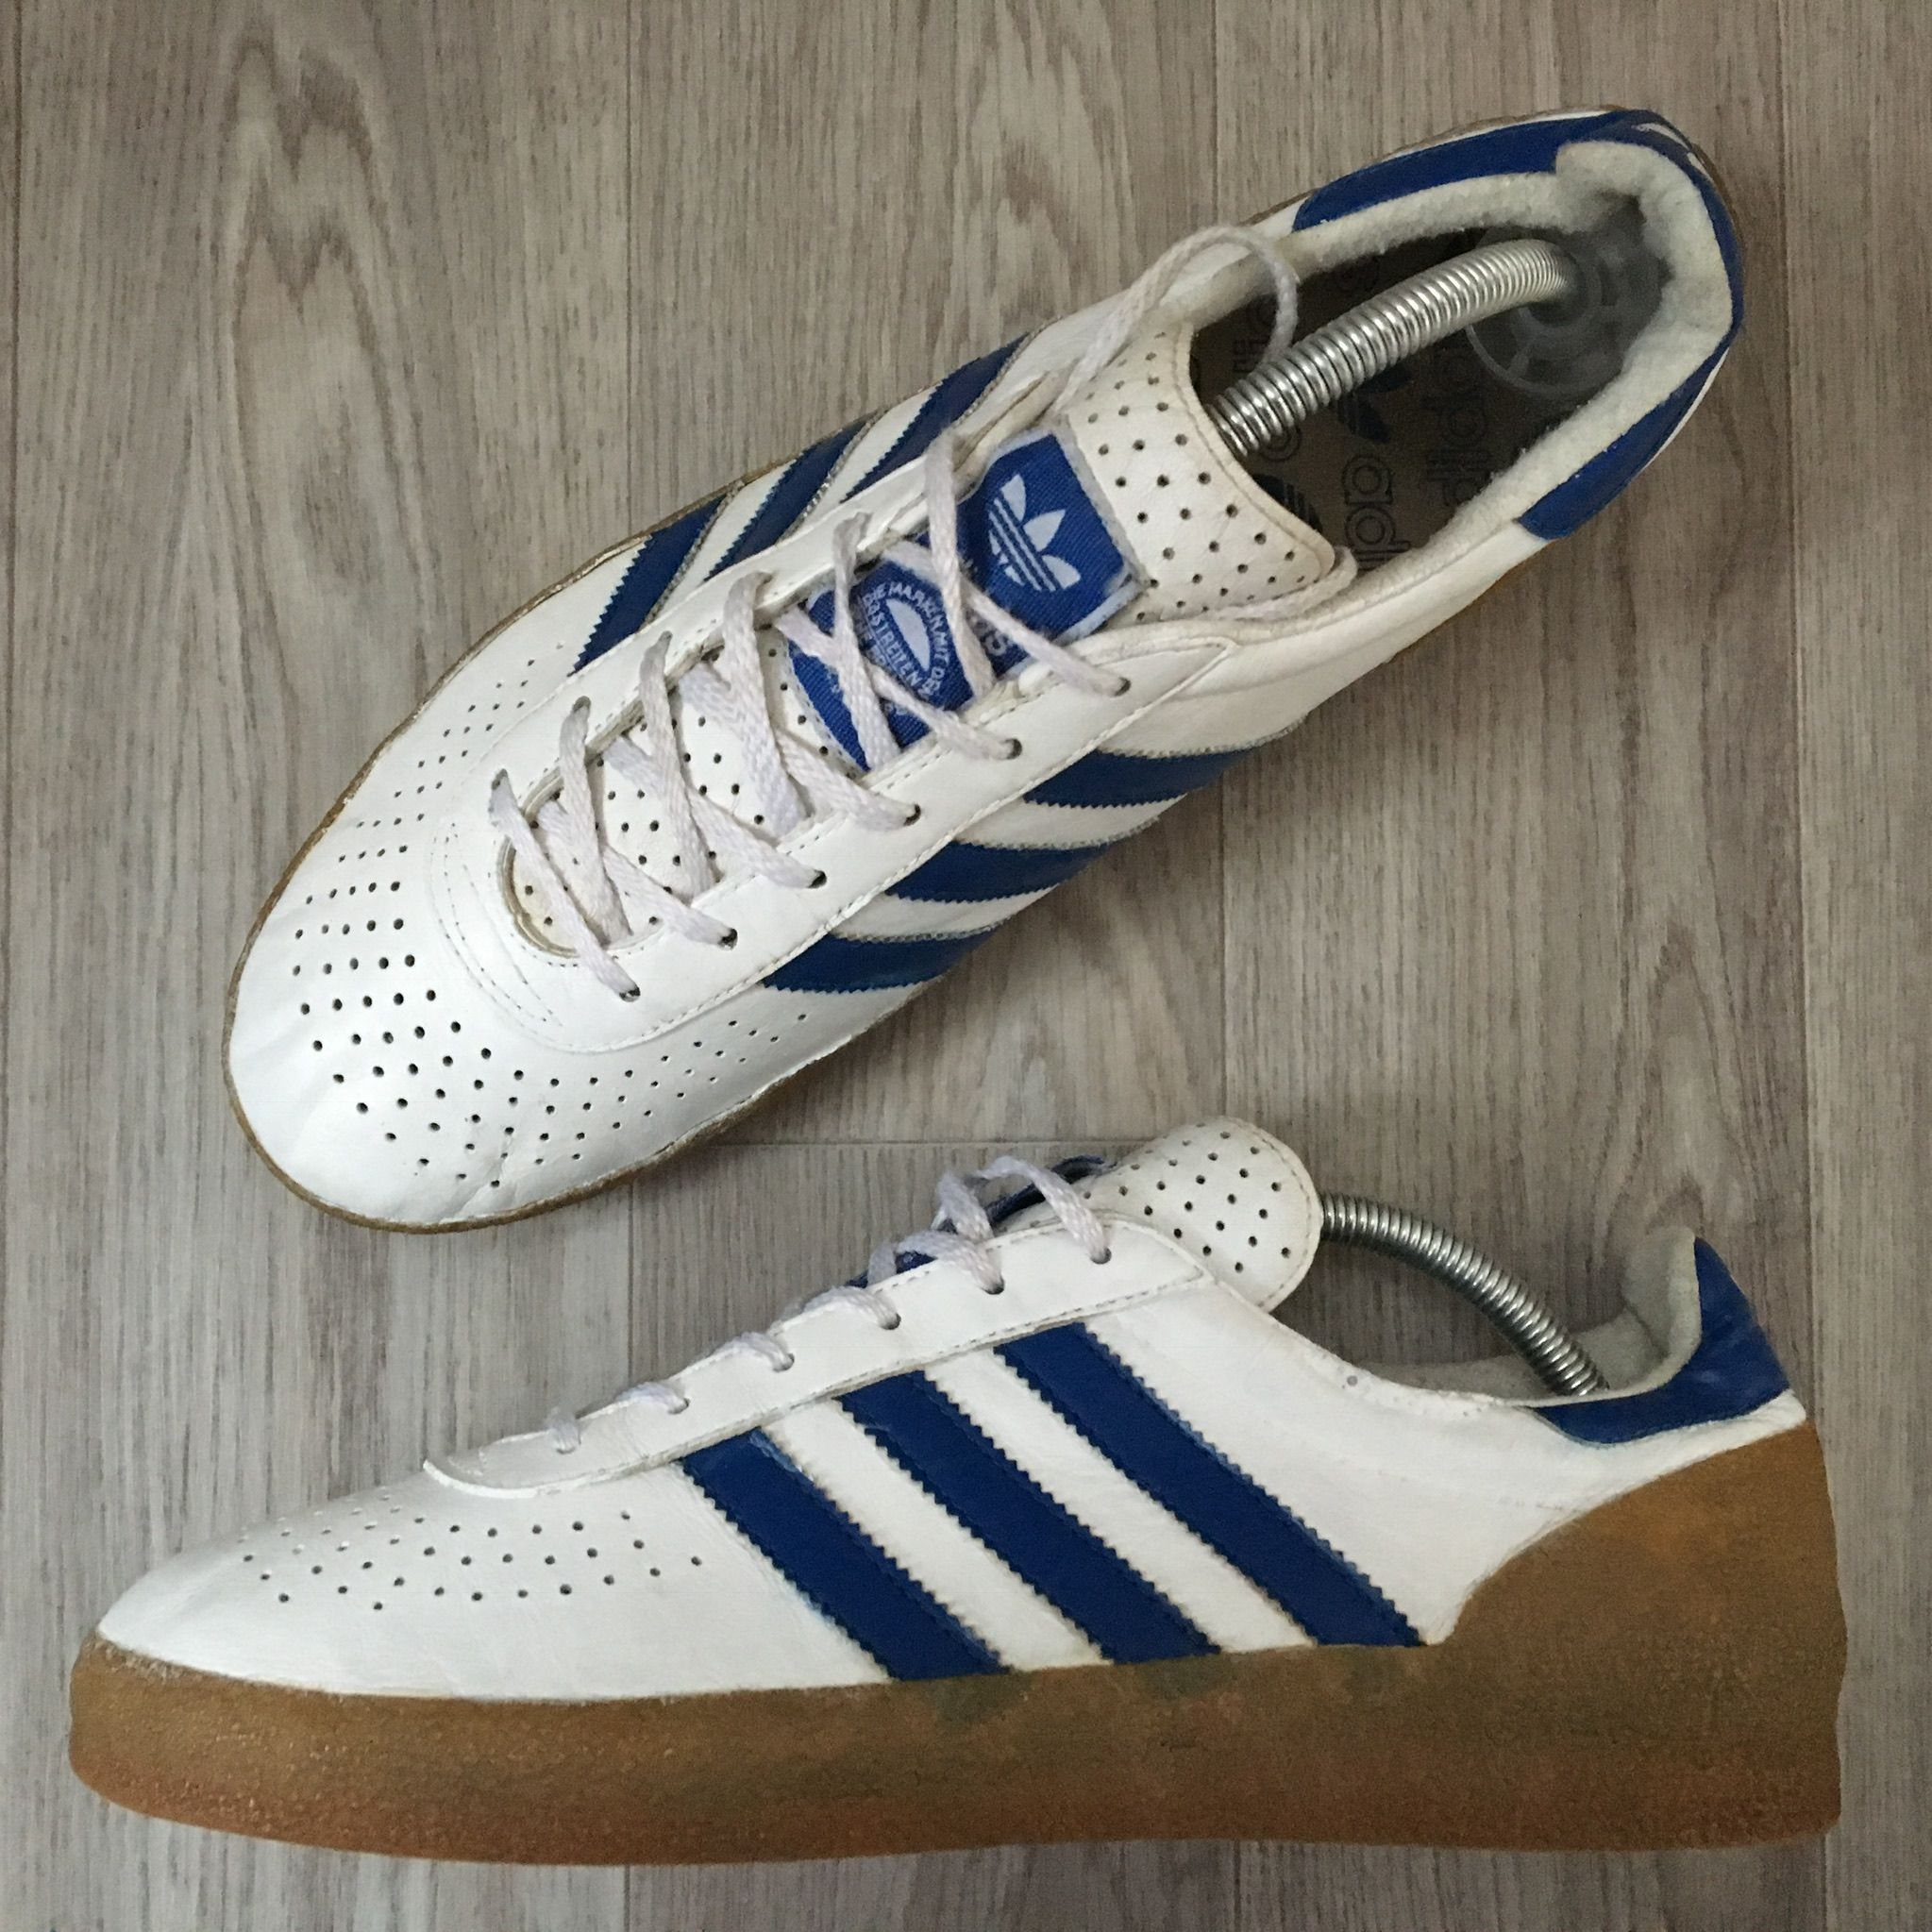 Adidas Montreal. Article: 382042. Year: 2002. Made in China